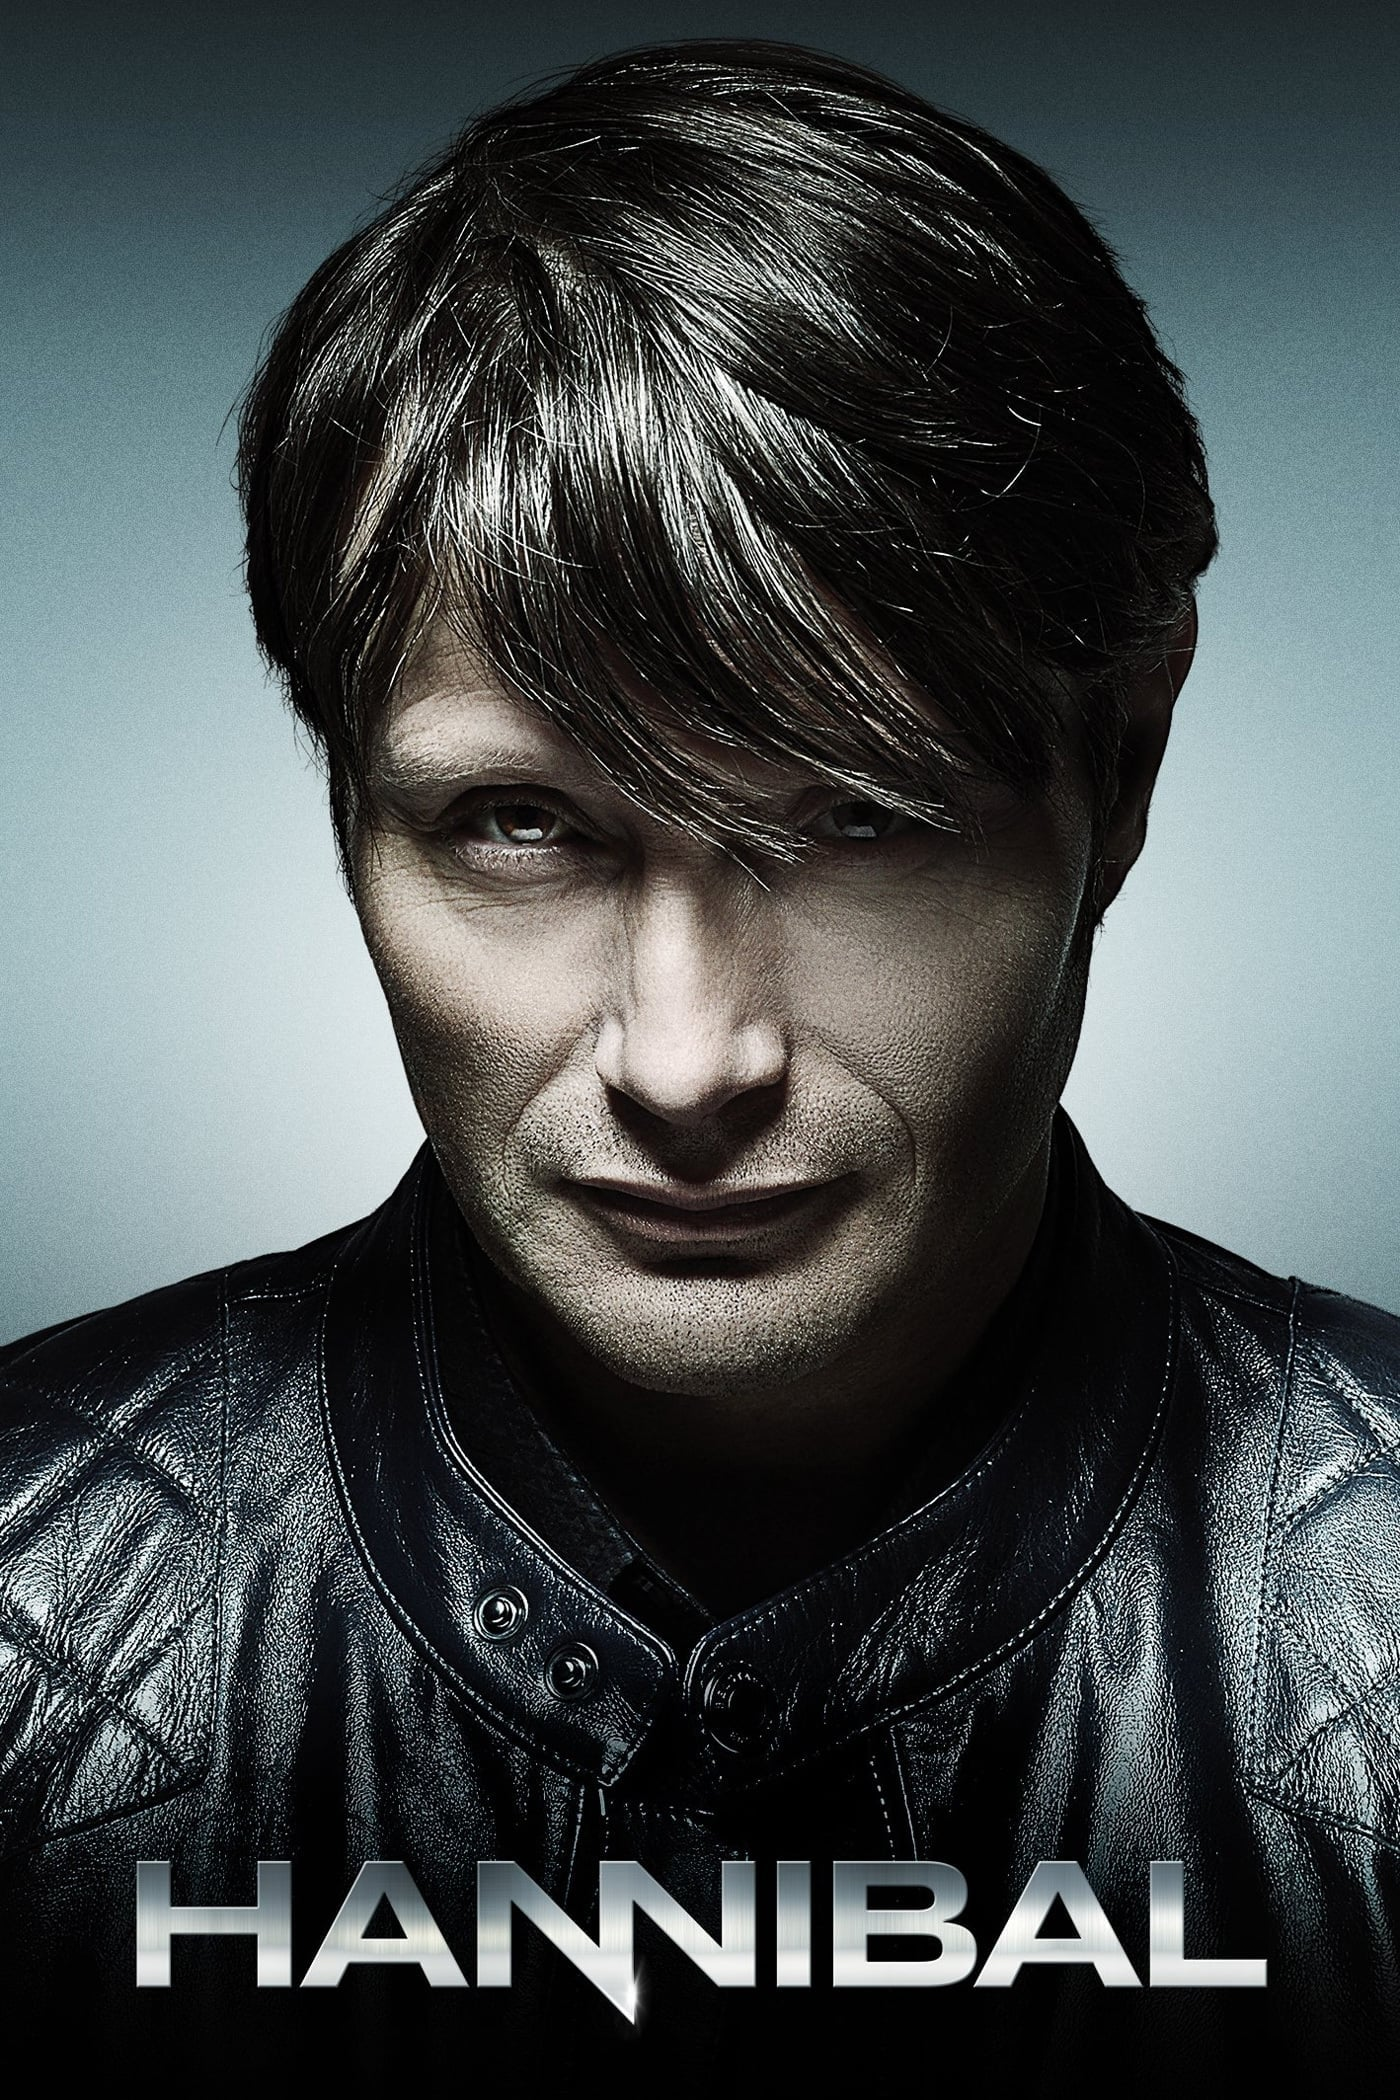 Hannibal TV Shows About Cannibal